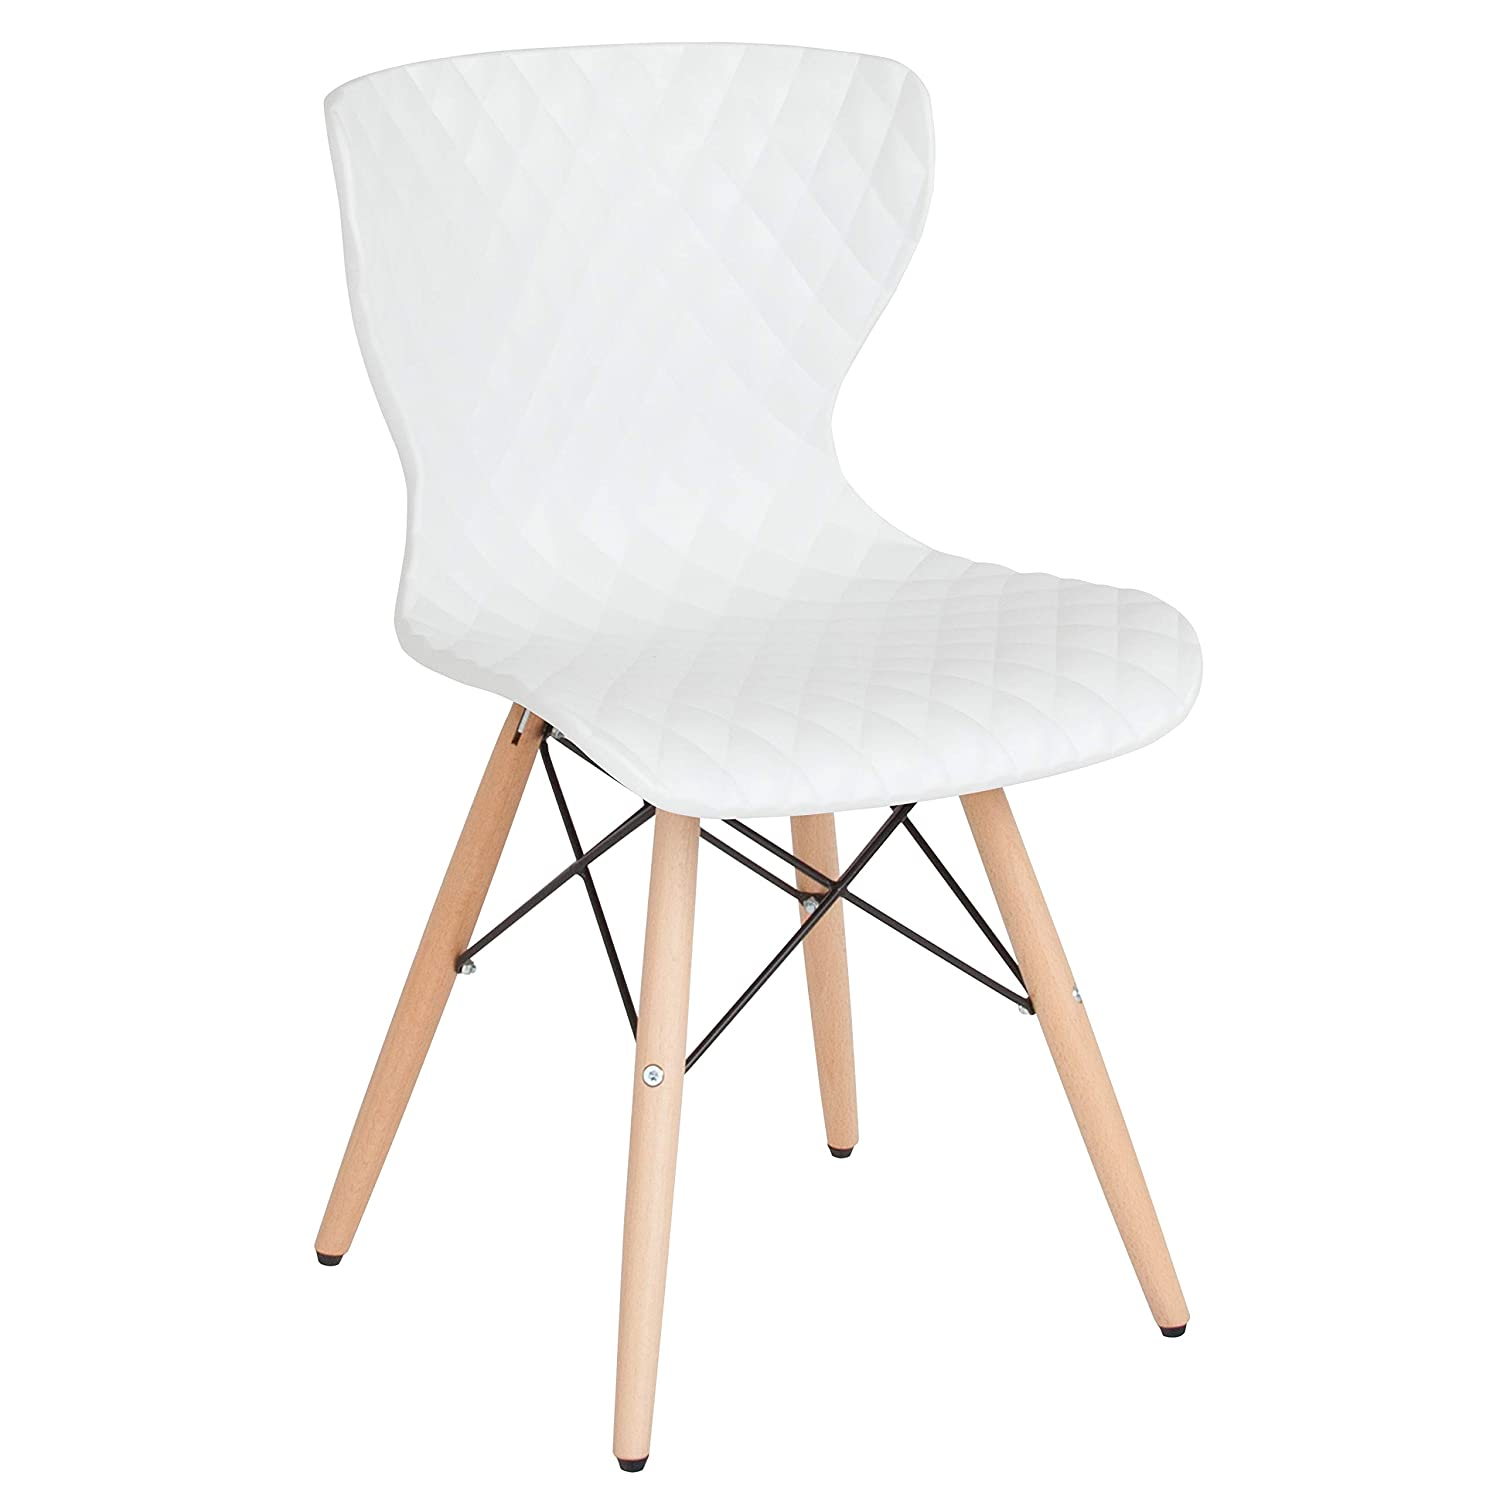 Surprising Flash Furniture Bedford Contemporary Design White Plastic Chair With Wooden Legs Ibusinesslaw Wood Chair Design Ideas Ibusinesslaworg